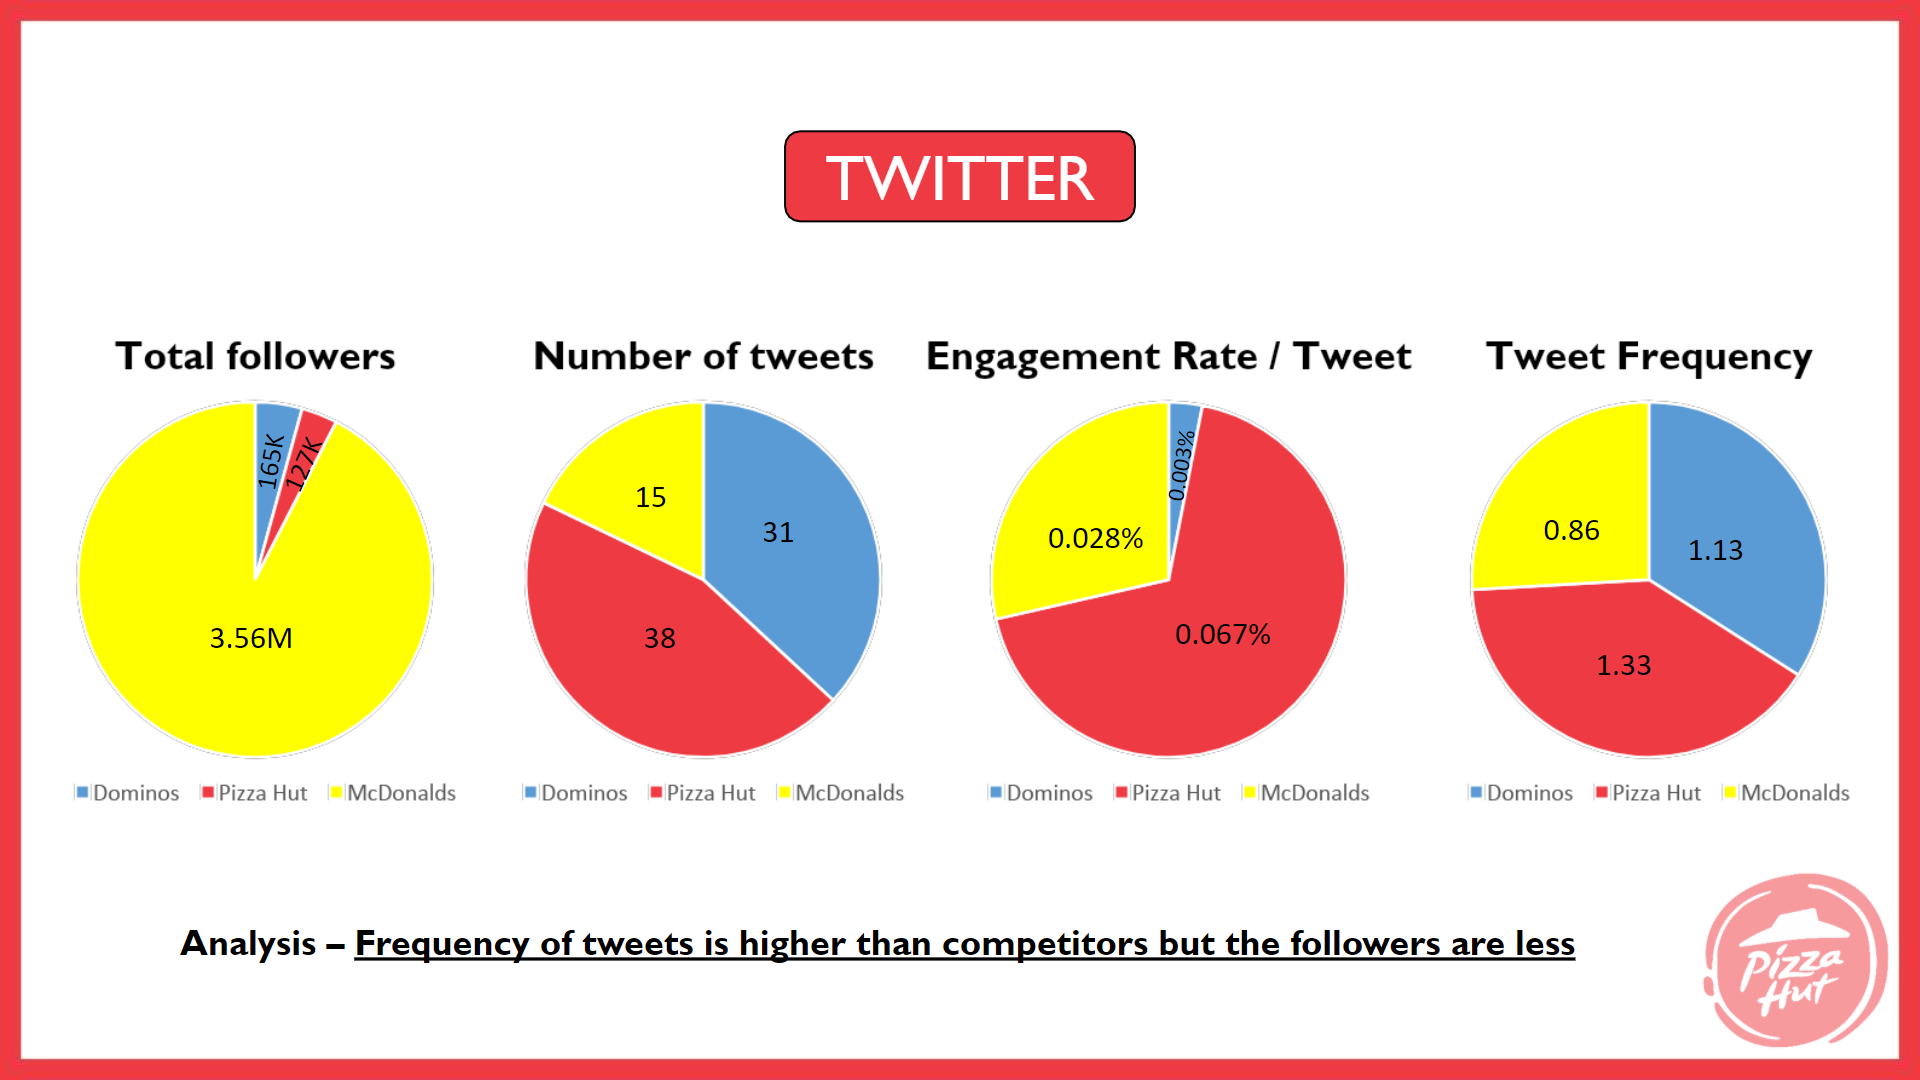 Twitter Analysis - Pizza Hut Marketing and Advertising Strategy